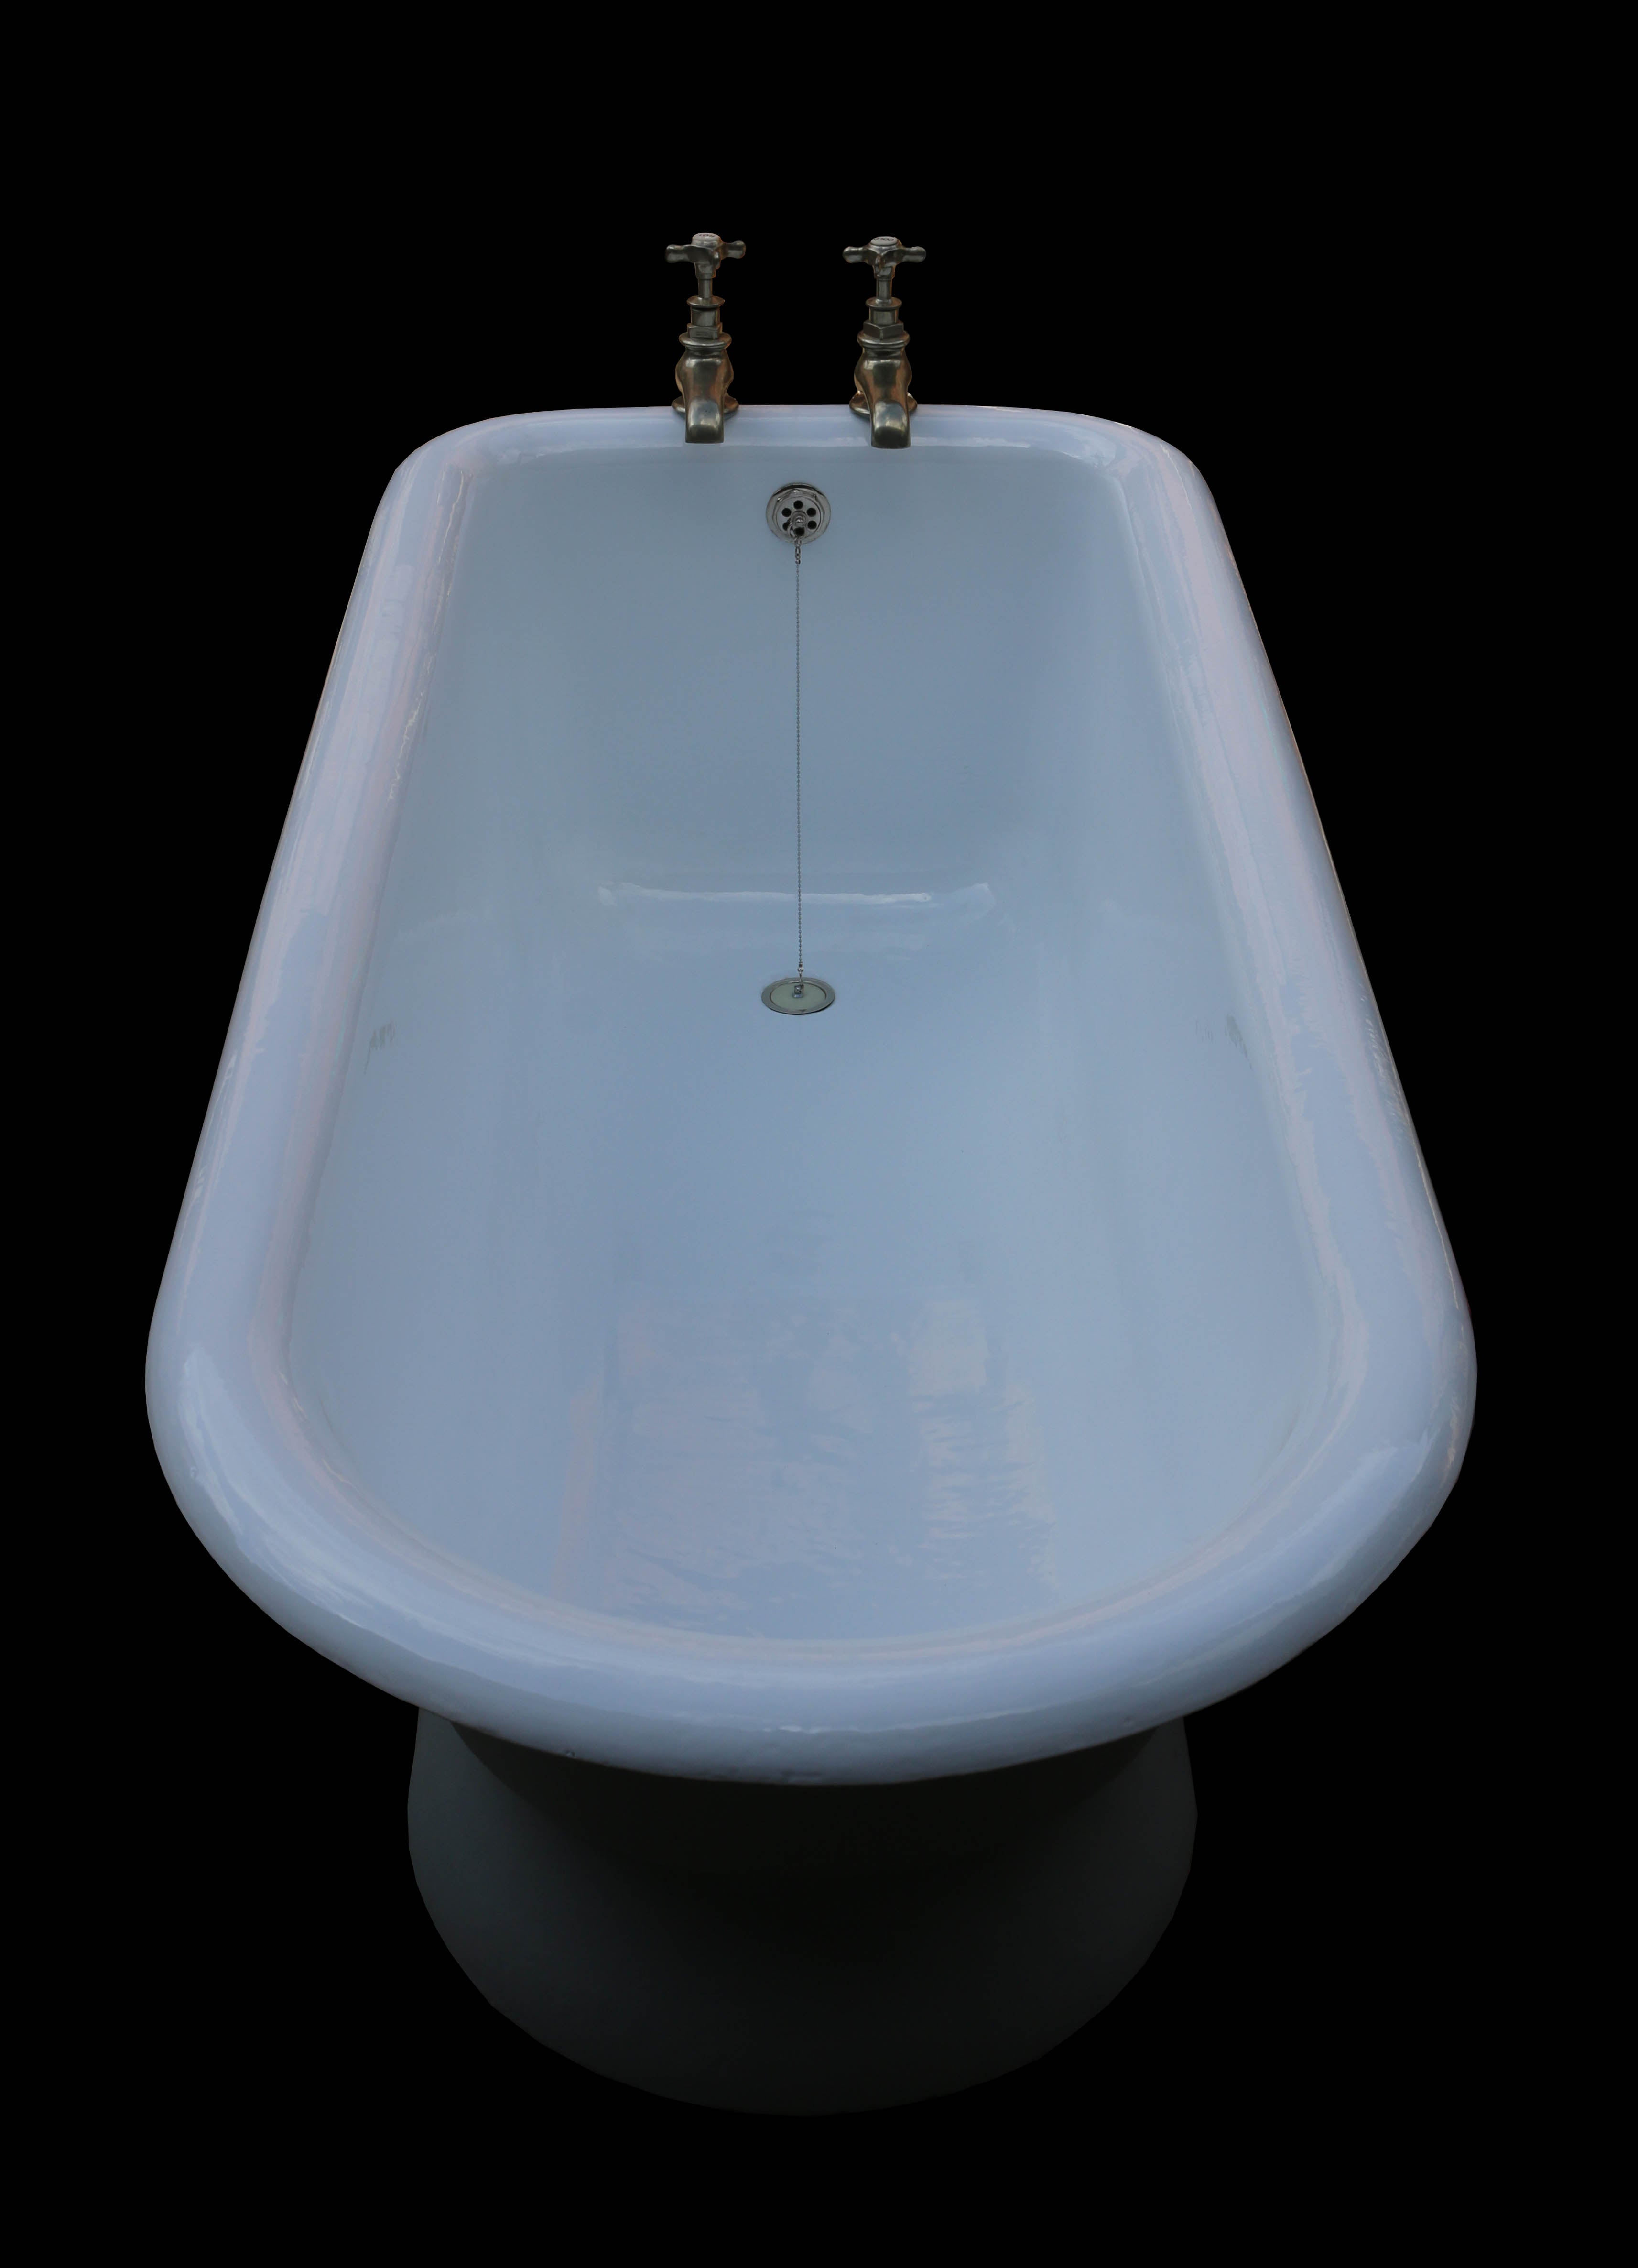 Rare Antique Cast Iron Bath Tub For Sale at 1stdibs